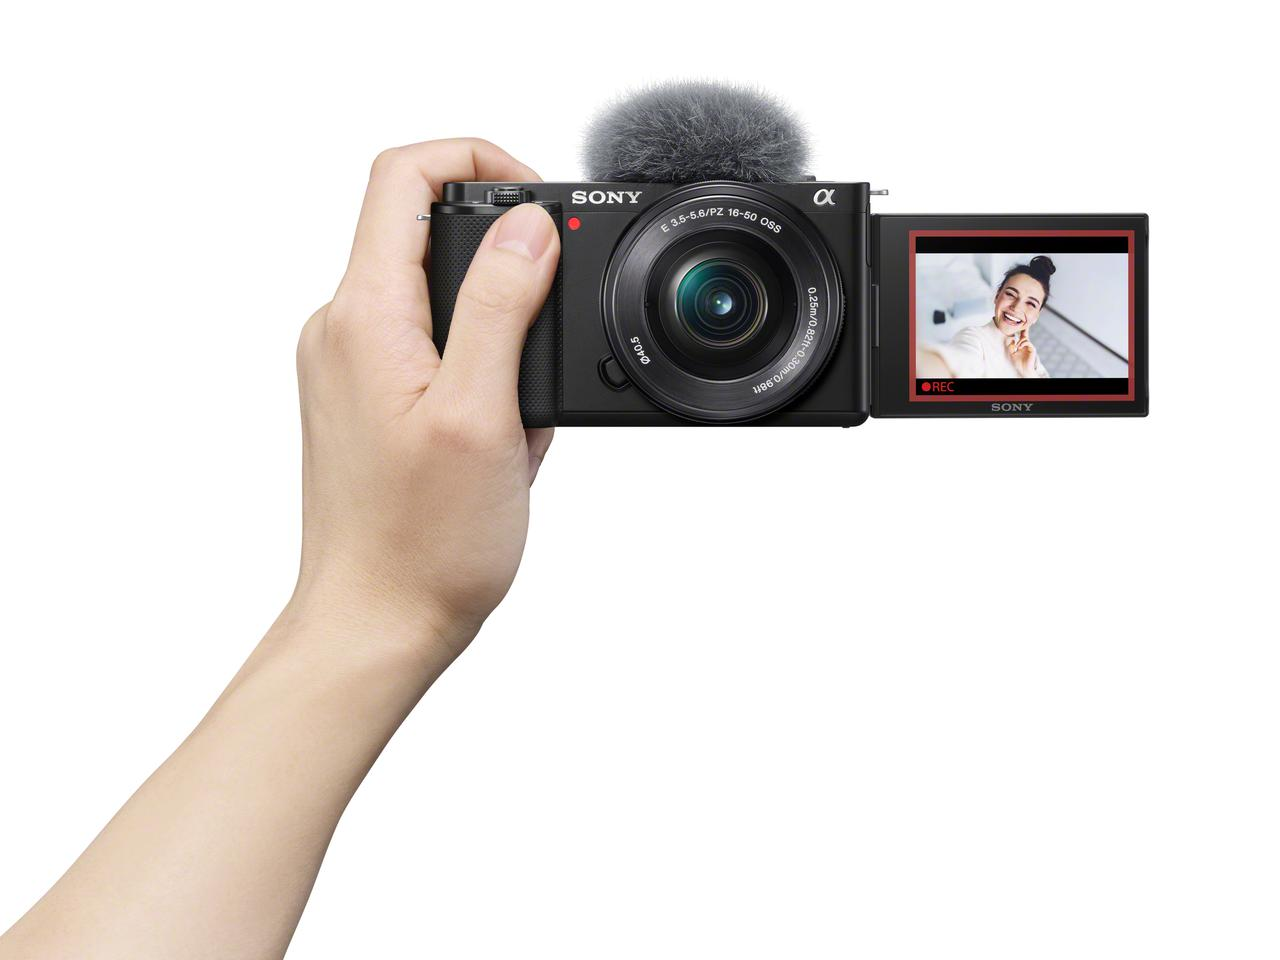 The ZV-E10 is the first Alpha interchangeable lens mirrorless camera optimized for vloggers